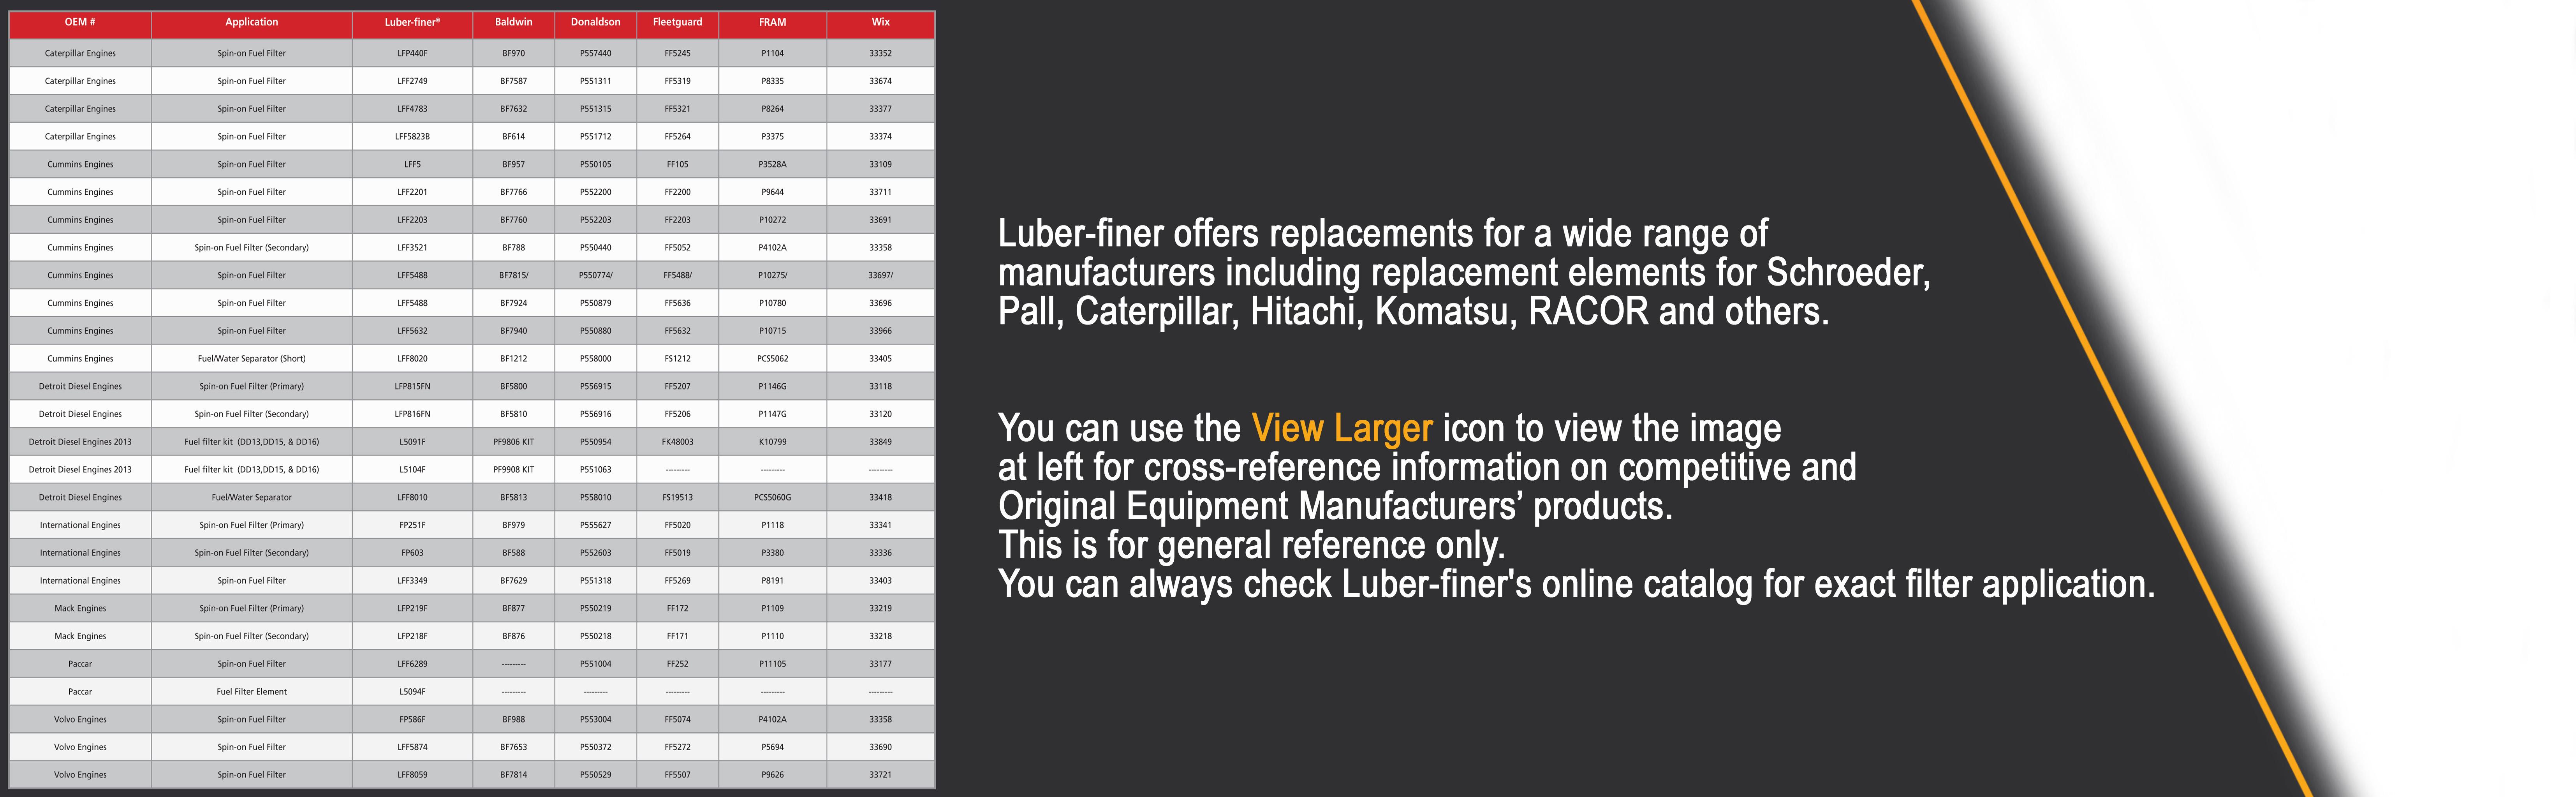 Luber Finer L3578fn Heavy Duty Fuel Filter Automotive 1999 Dodge Ram Location View Larger